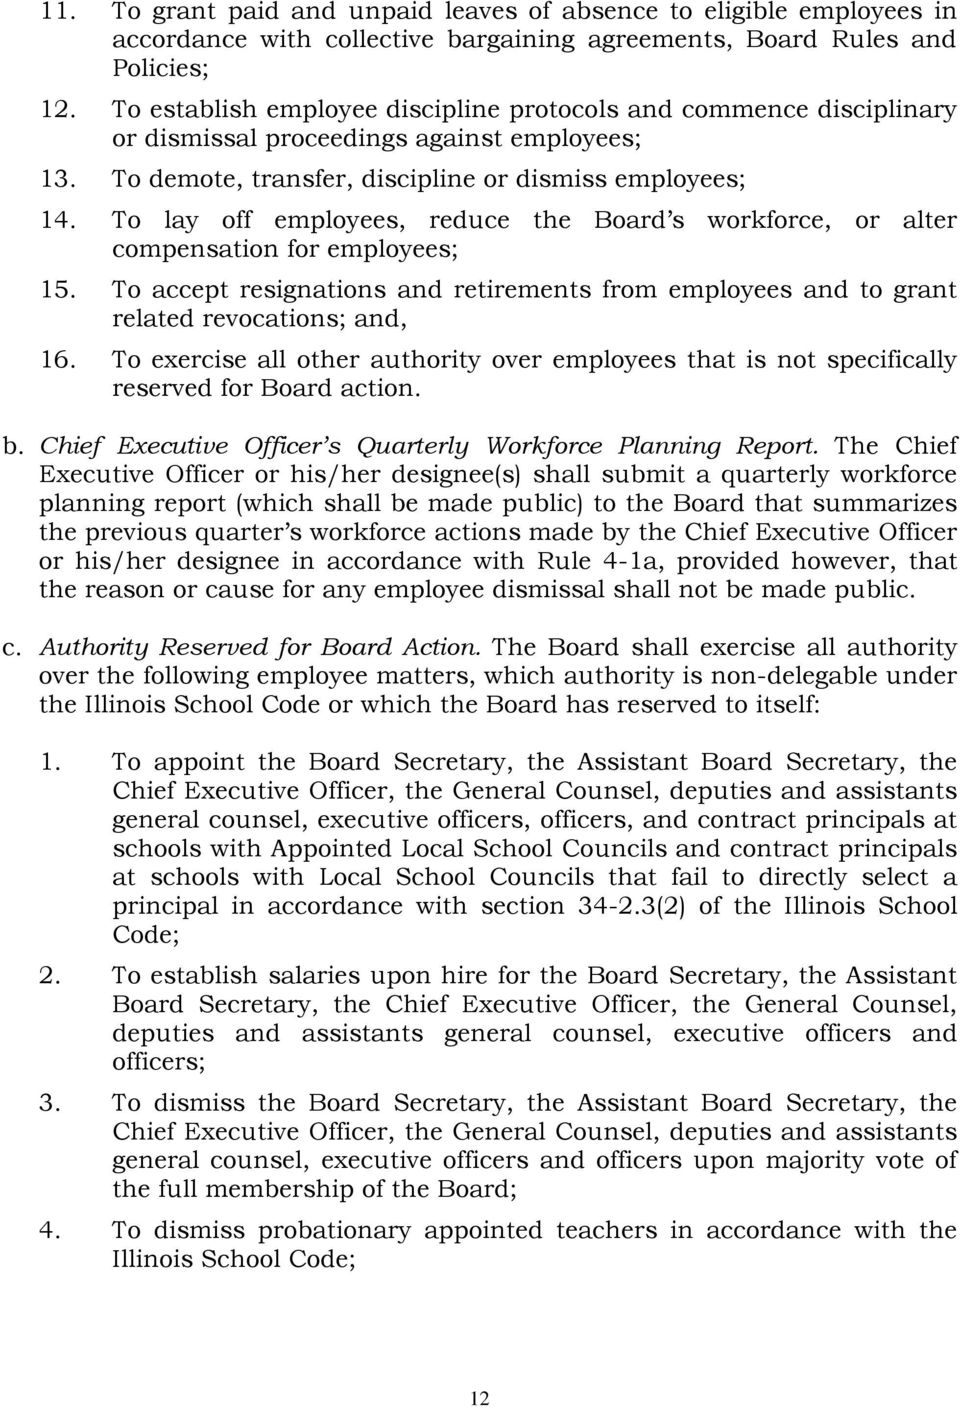 CHAPTER IV BOARD EMPLOYMENT - PDF